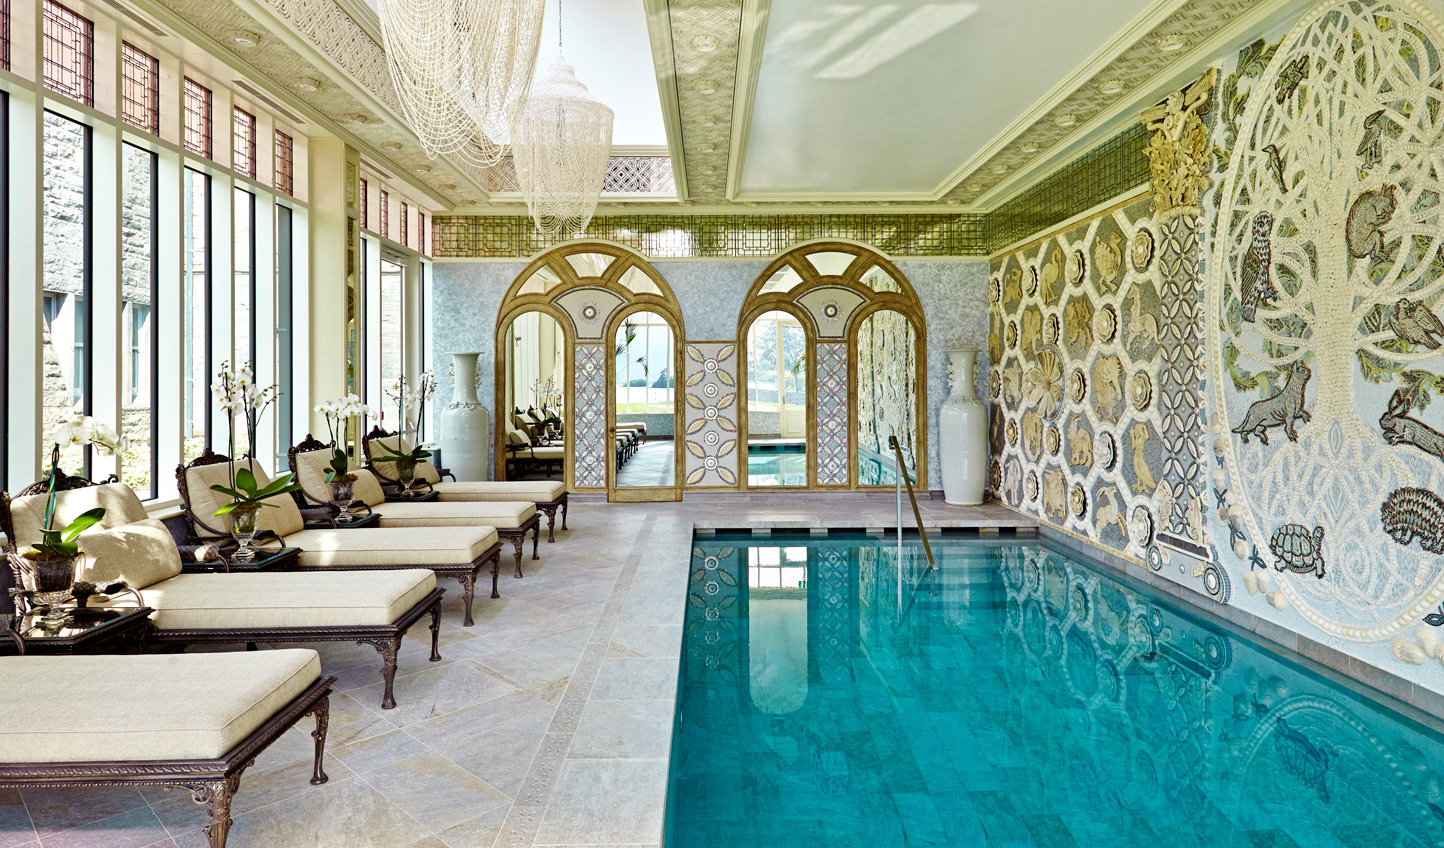 Fancy a dip? Take the plunge in the indoor pool